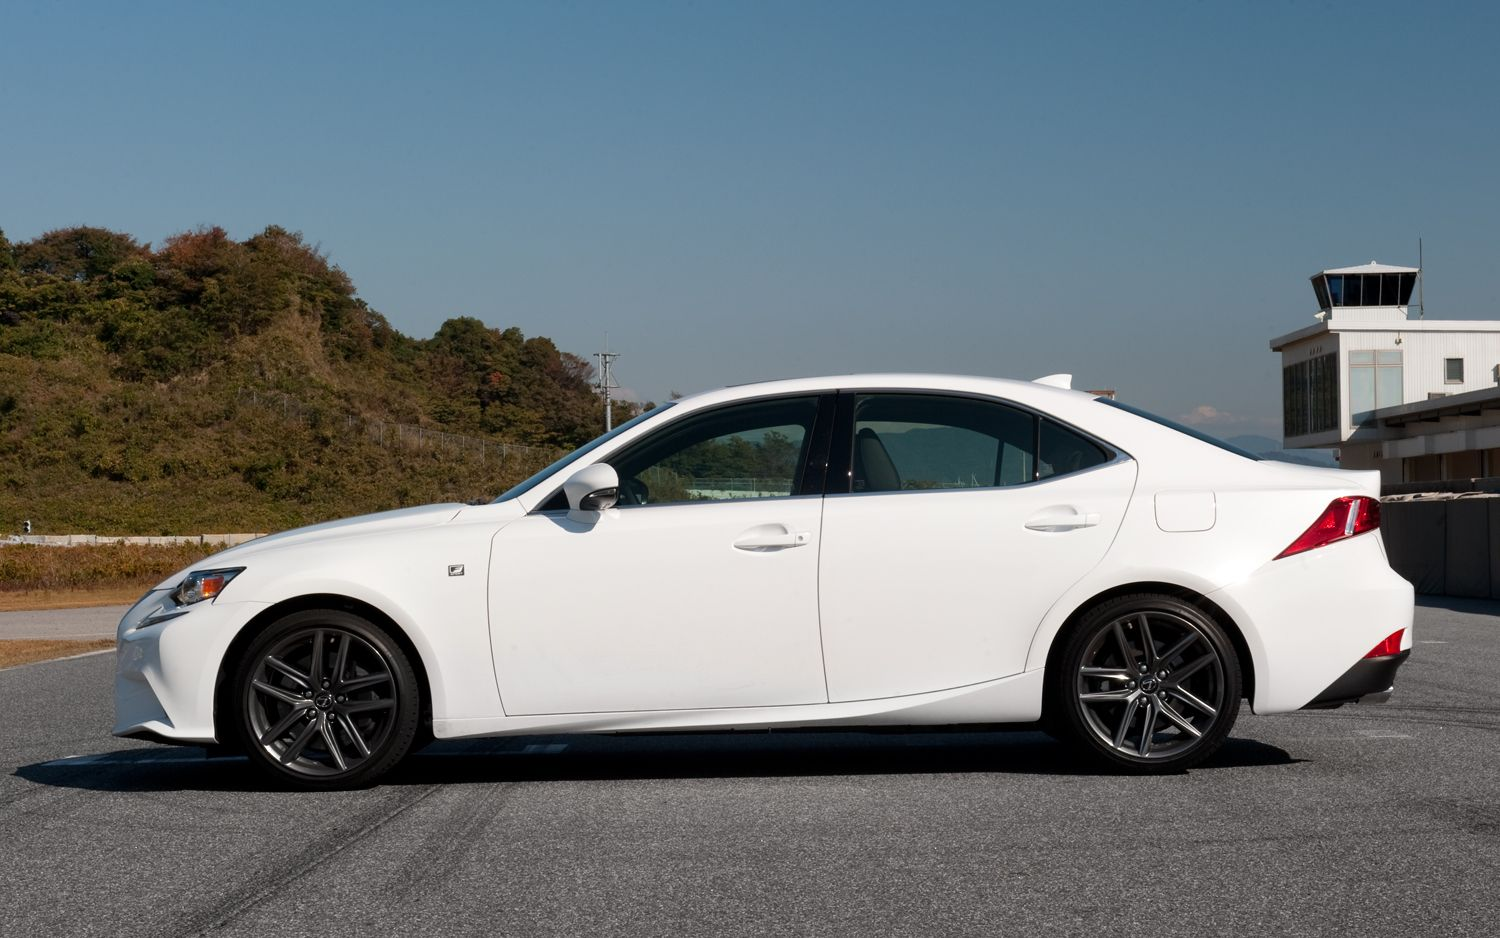 2014 Lexus IS 350 F Sport Wallpaper for Desktop Lexus